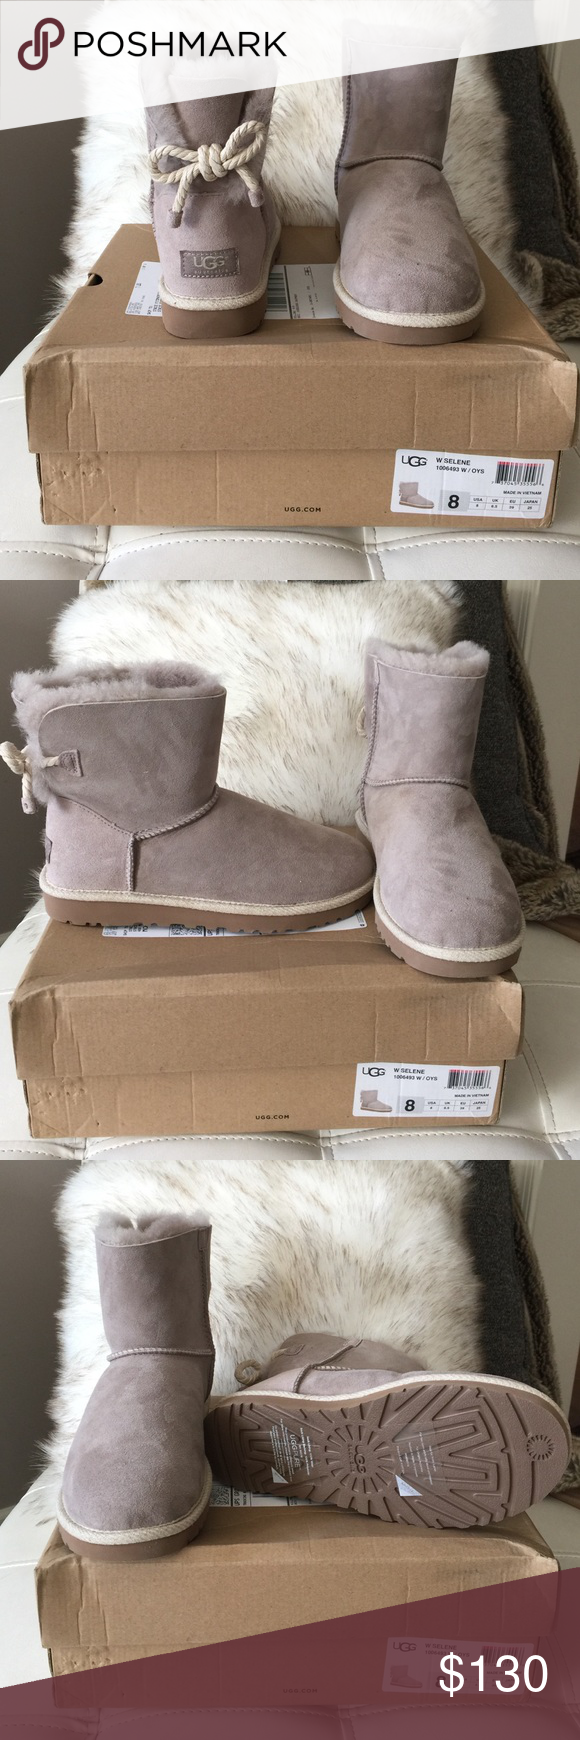 cf5c21b80f1 Brand New - UGG W SELENE Oyster in Color UGG Shoes Ankle Boots ...